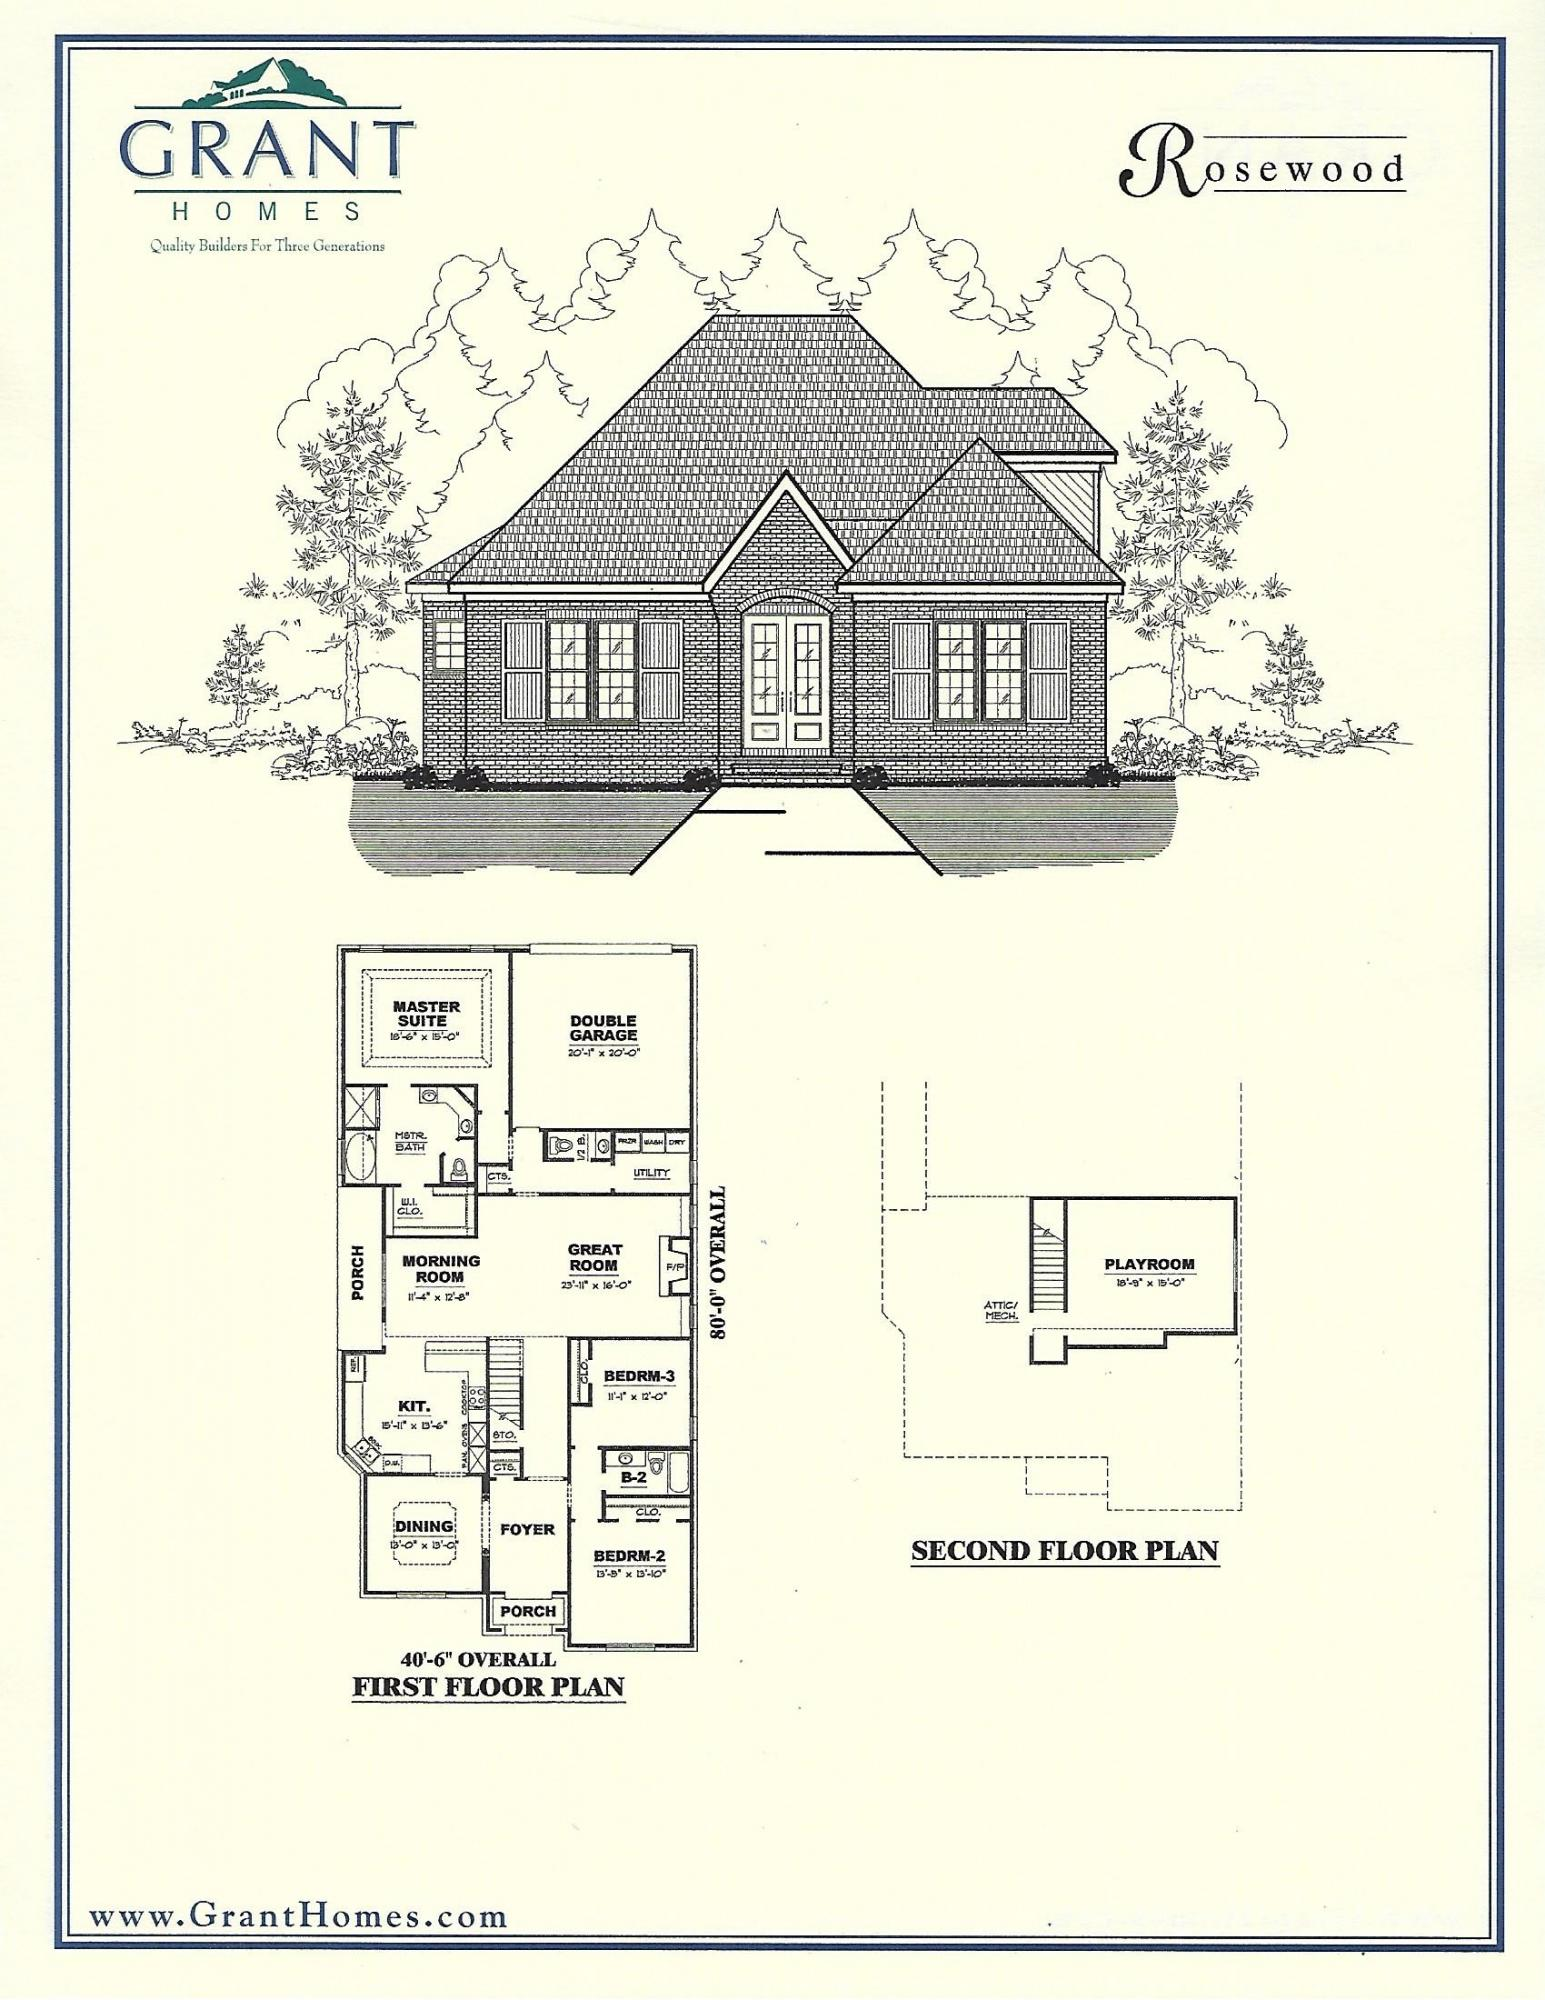 Amazing Rosewood House Plan Pictures Best Inspiration